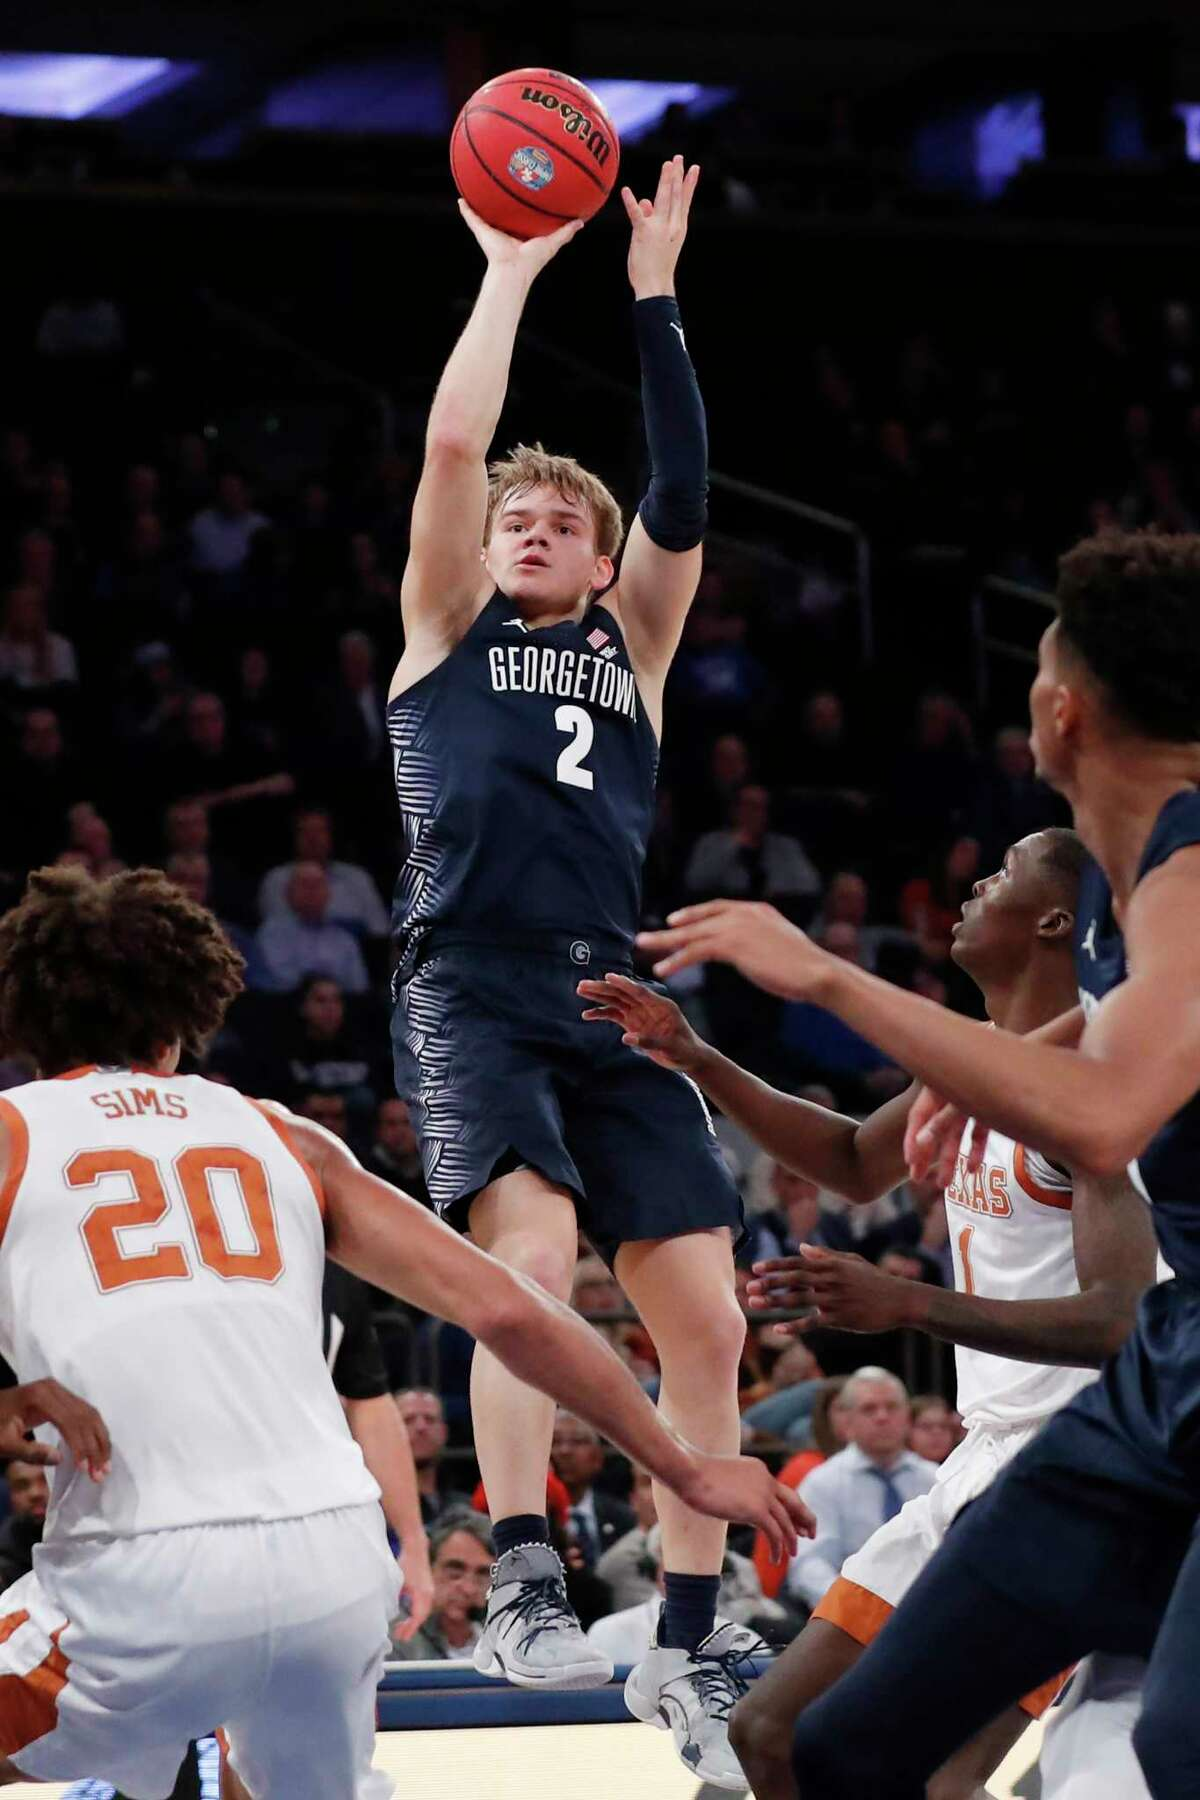 Georgetown guard Mac McClung (2) goes up for a shot as Texas forward Jericho Sims (20) looks on, below left, during the second half of the first round of the 2K Empire Classic NCAA college basketball tournament, Thursday, Nov. 21, 2019, in New York. McClung was the high scorer as Georgetown defeated Texas 82-66. (AP Photo/Kathy Willens)